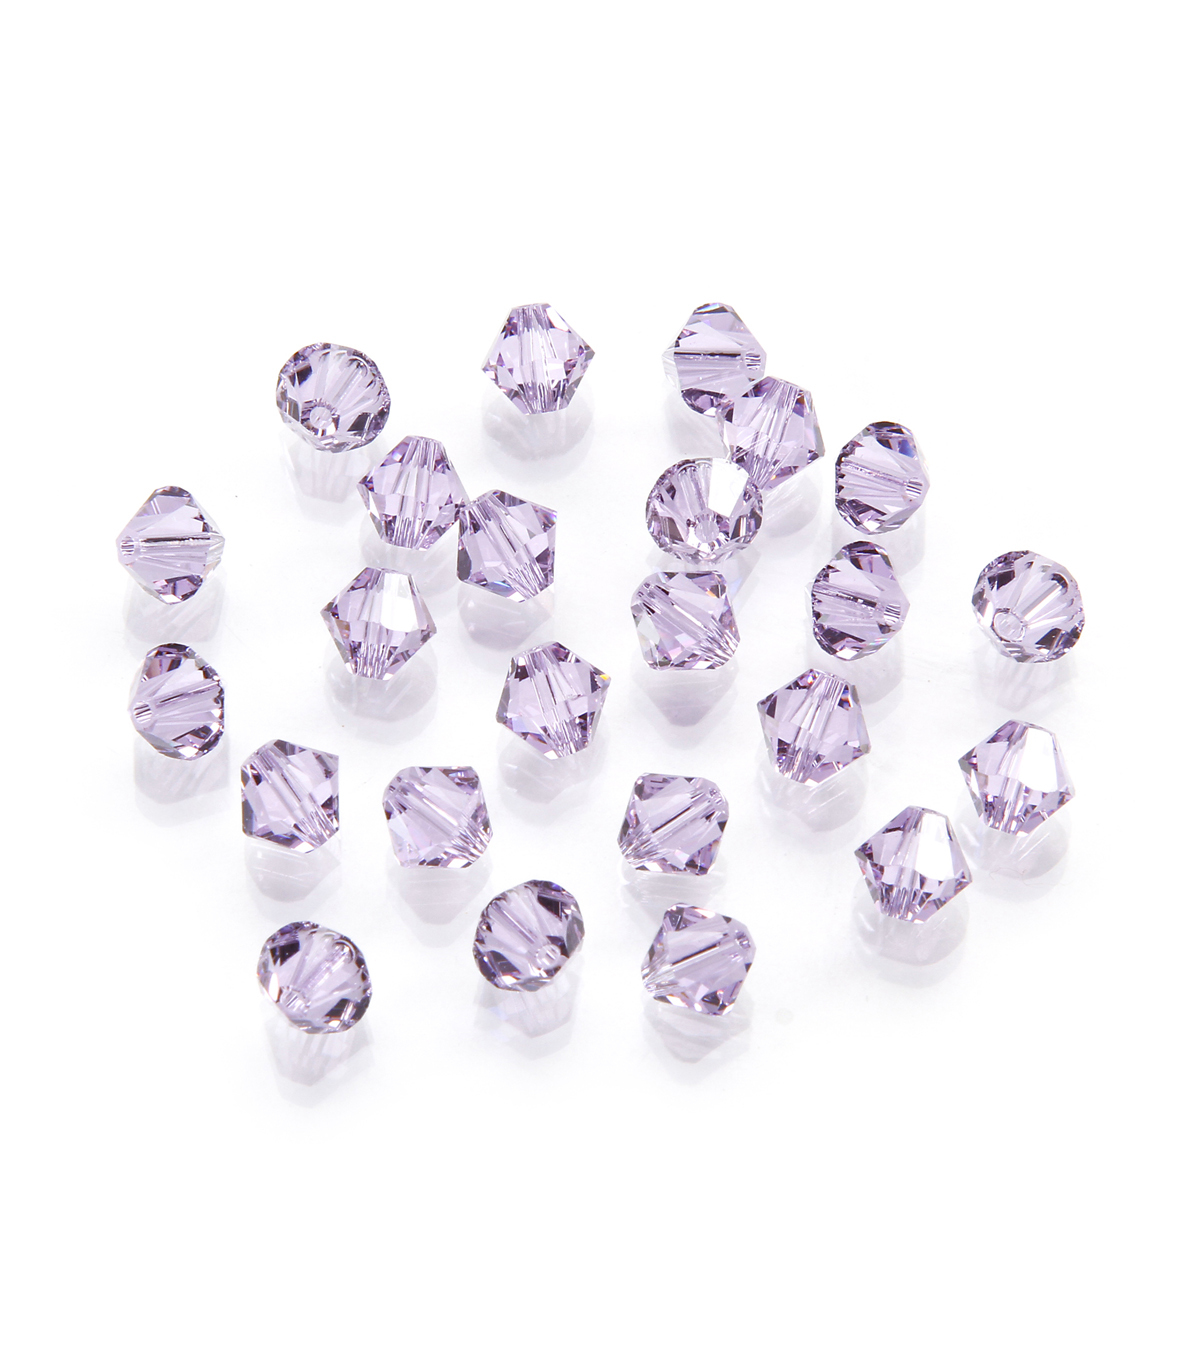 Swarovski Faceted Bicone Crystal Beads, Violet, 6mm, 24pc/pkg